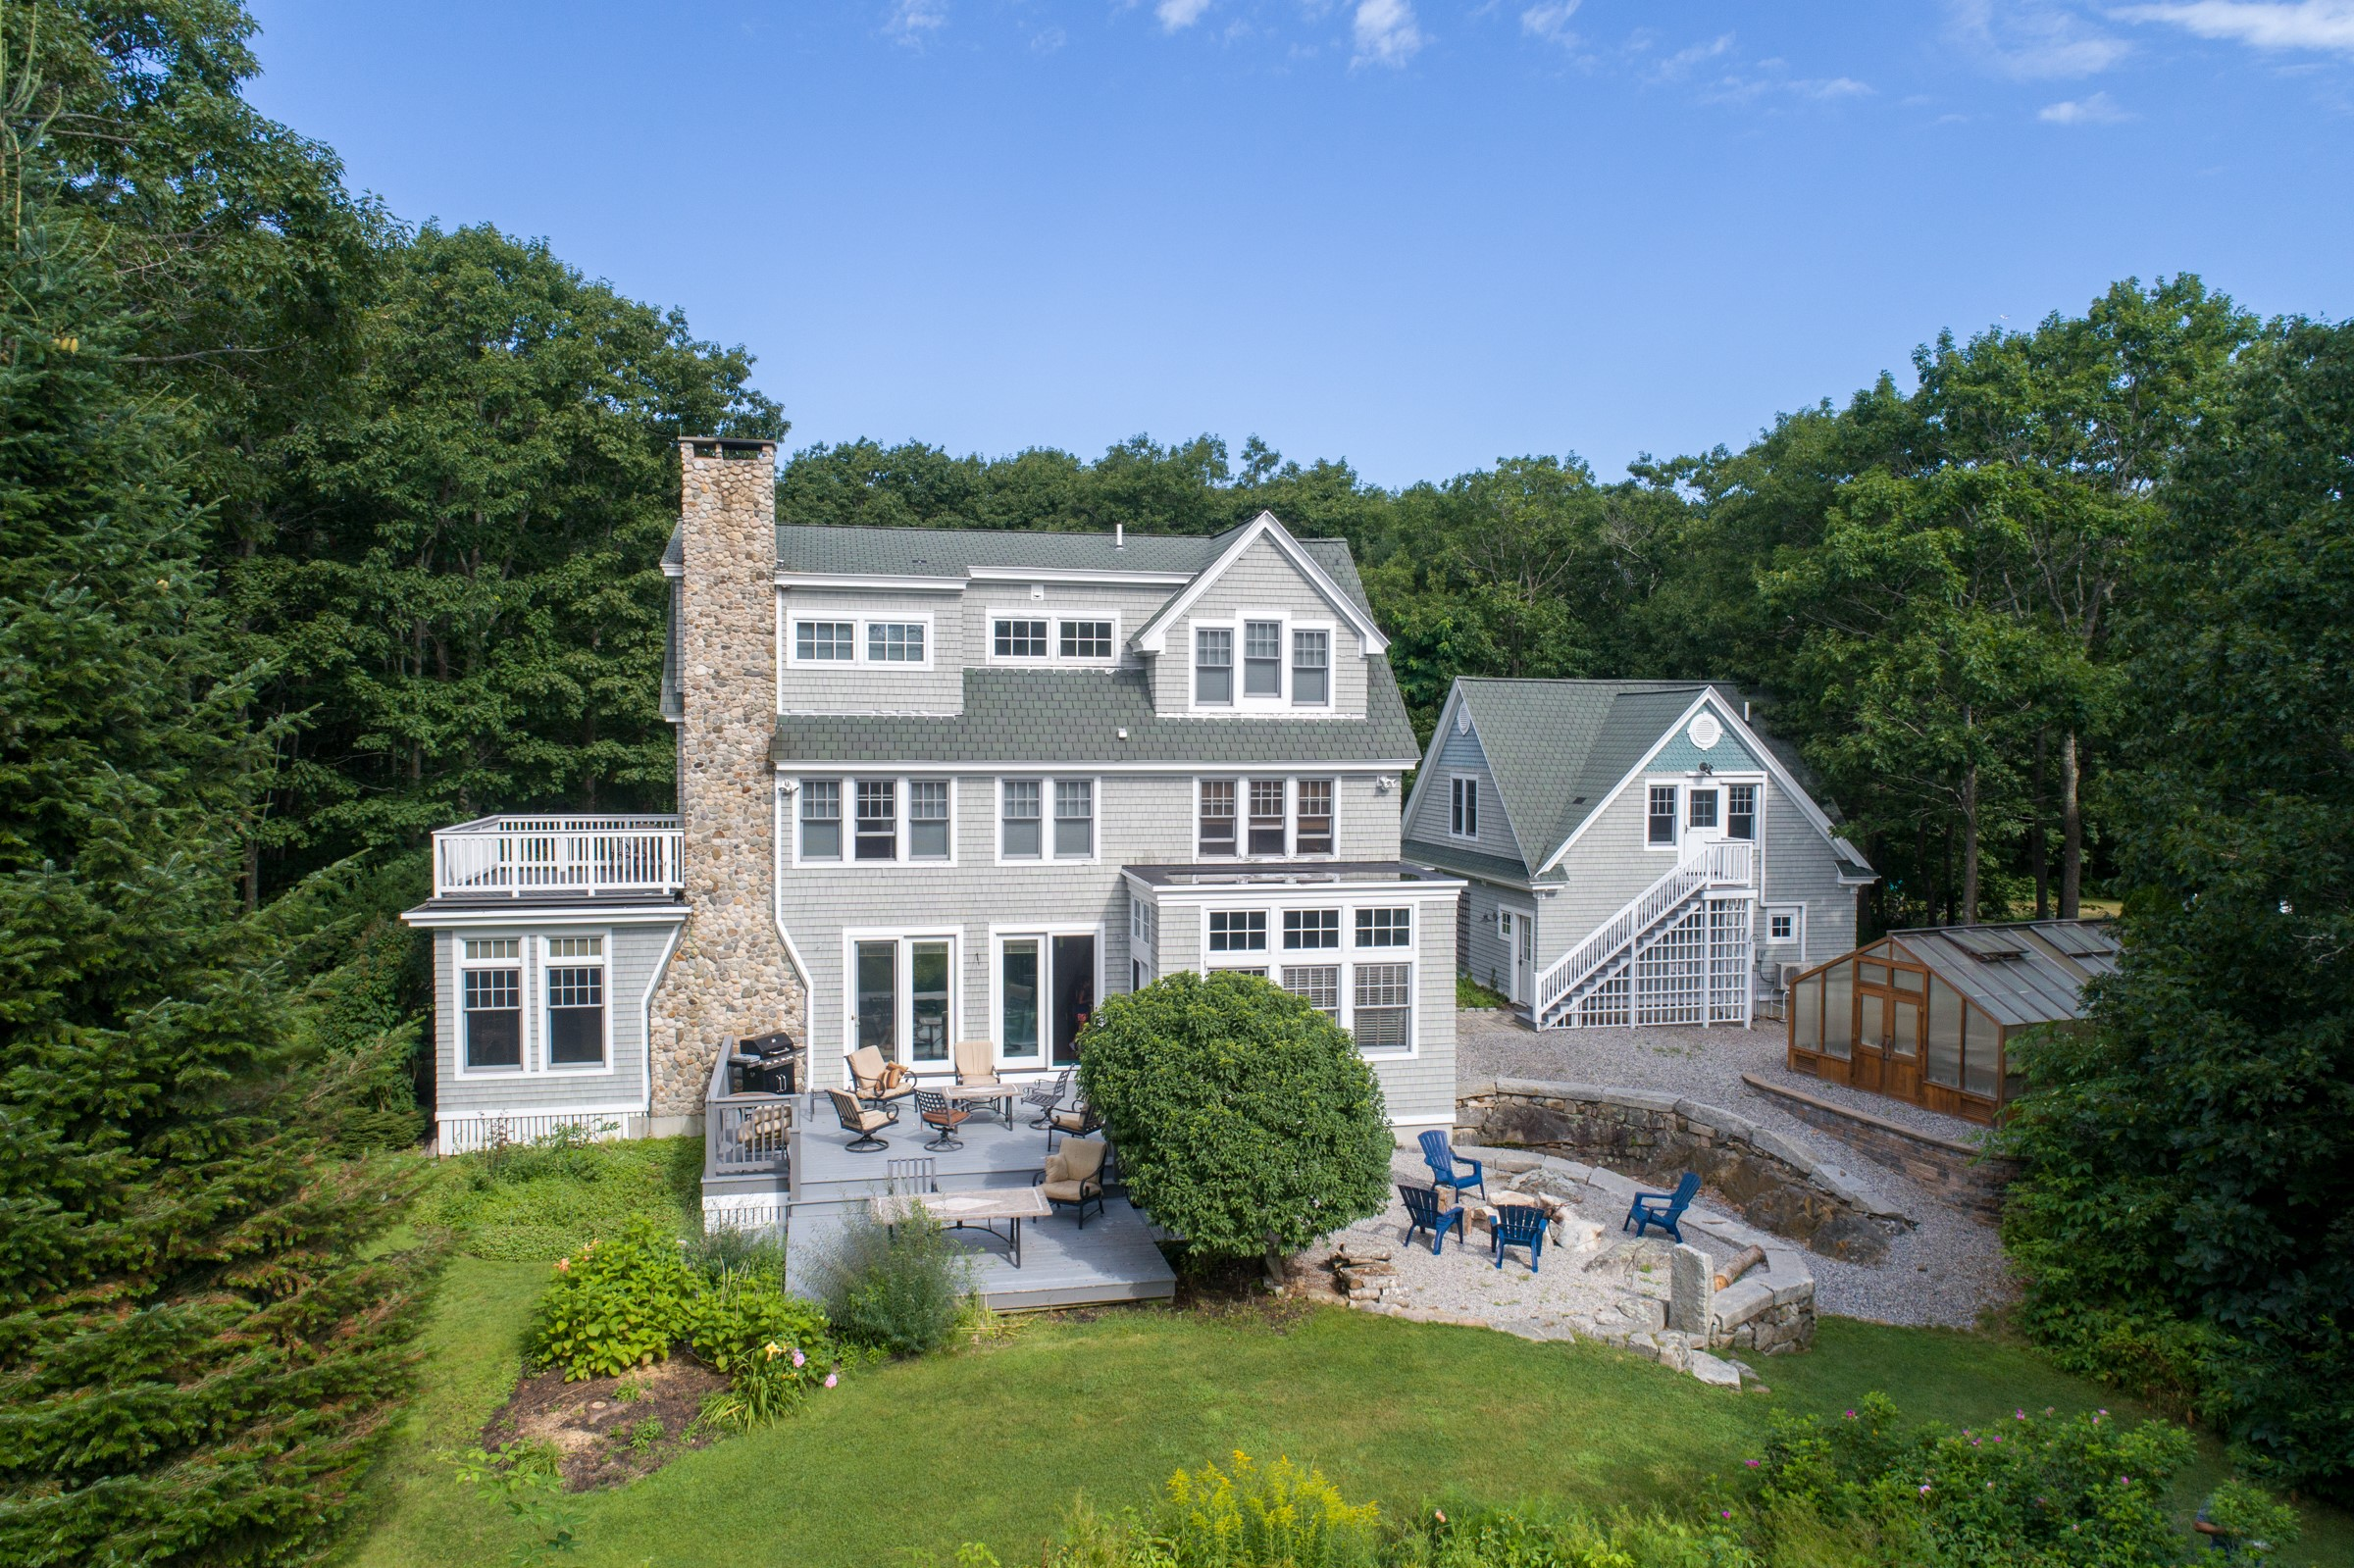 Peter Pond Ln Details Vacation Rentals In Biddeford Pool Fortunes Rocks Hills Beach And Granite Point Maine